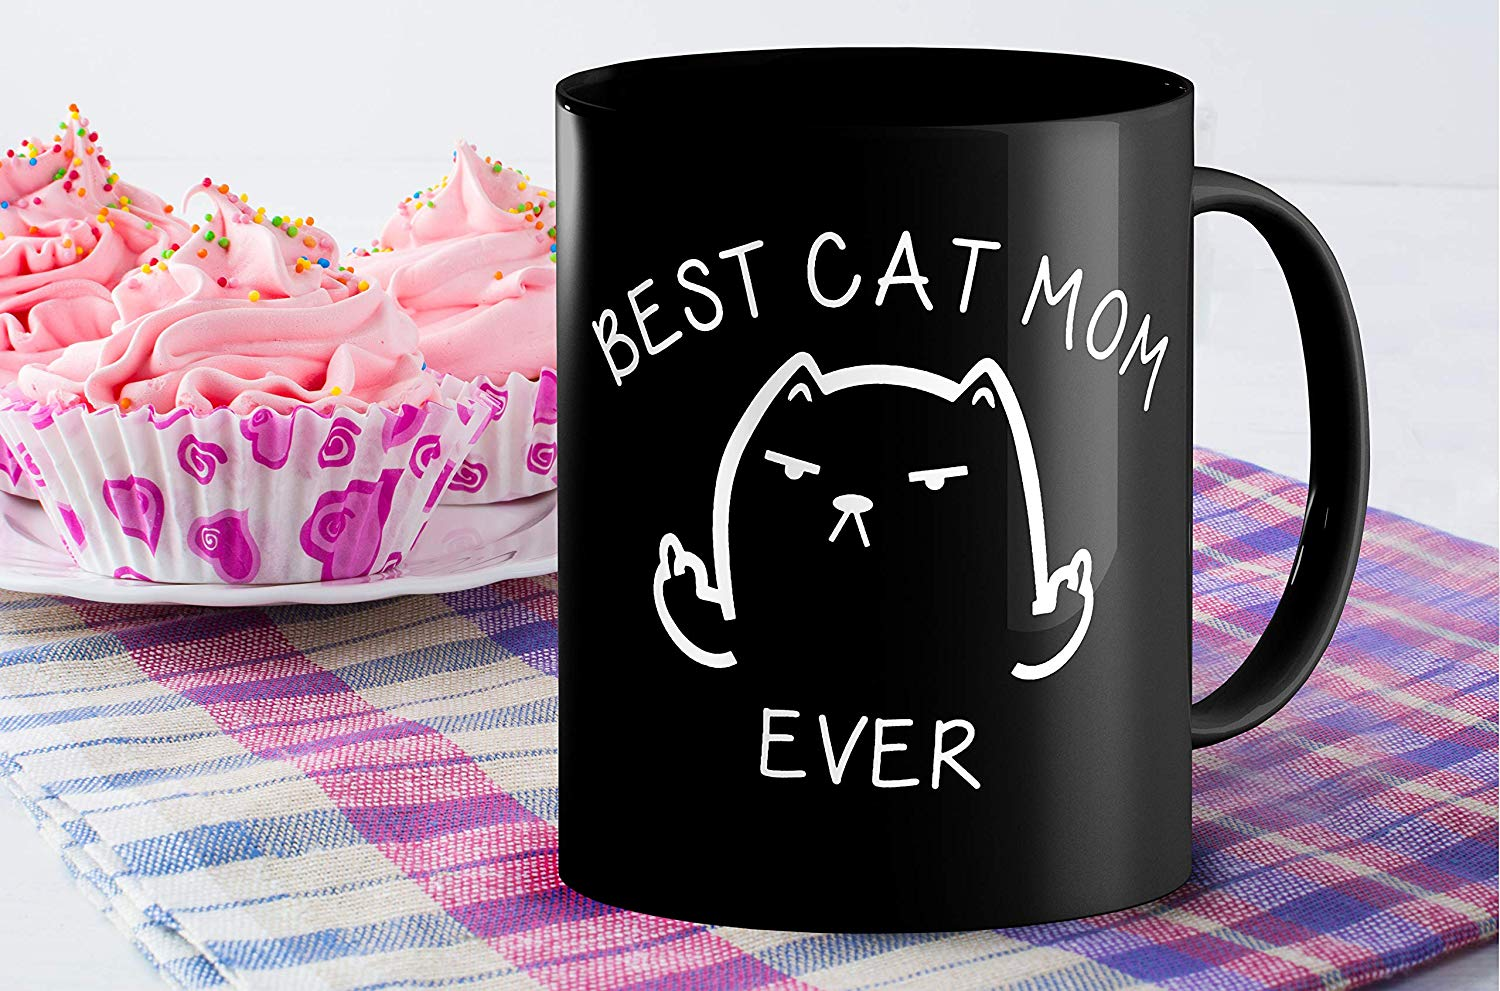 Best Cat Mom Ever Funny Coffee Mug Cat Middle Finger 11 Oz Birthday Gift For MotherMom Or Wife B079FYPL3B 6